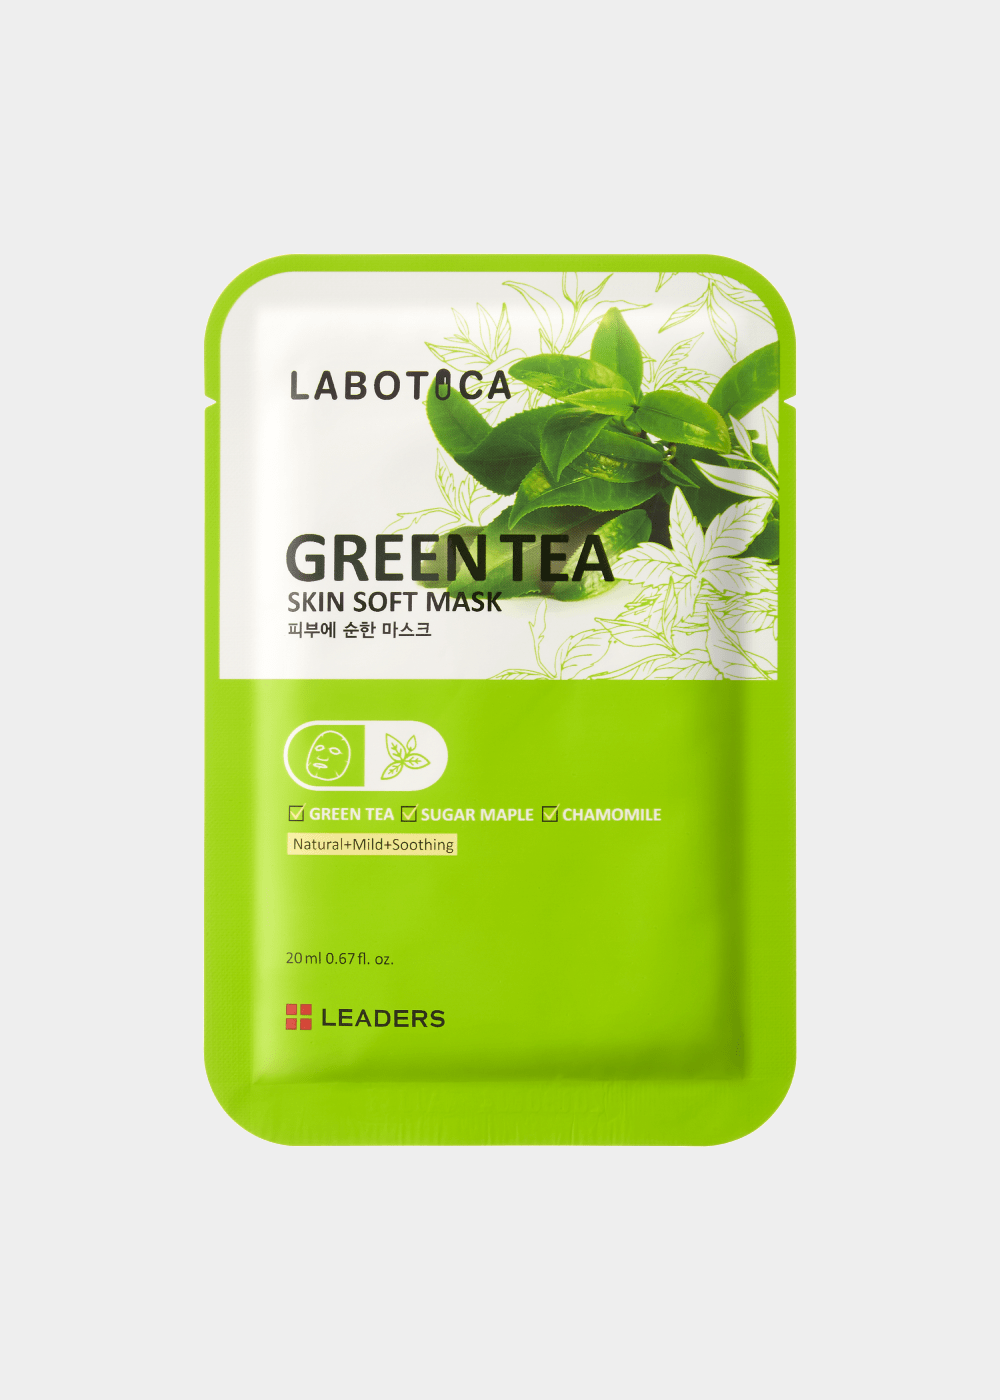 labotica-green-tea-editada